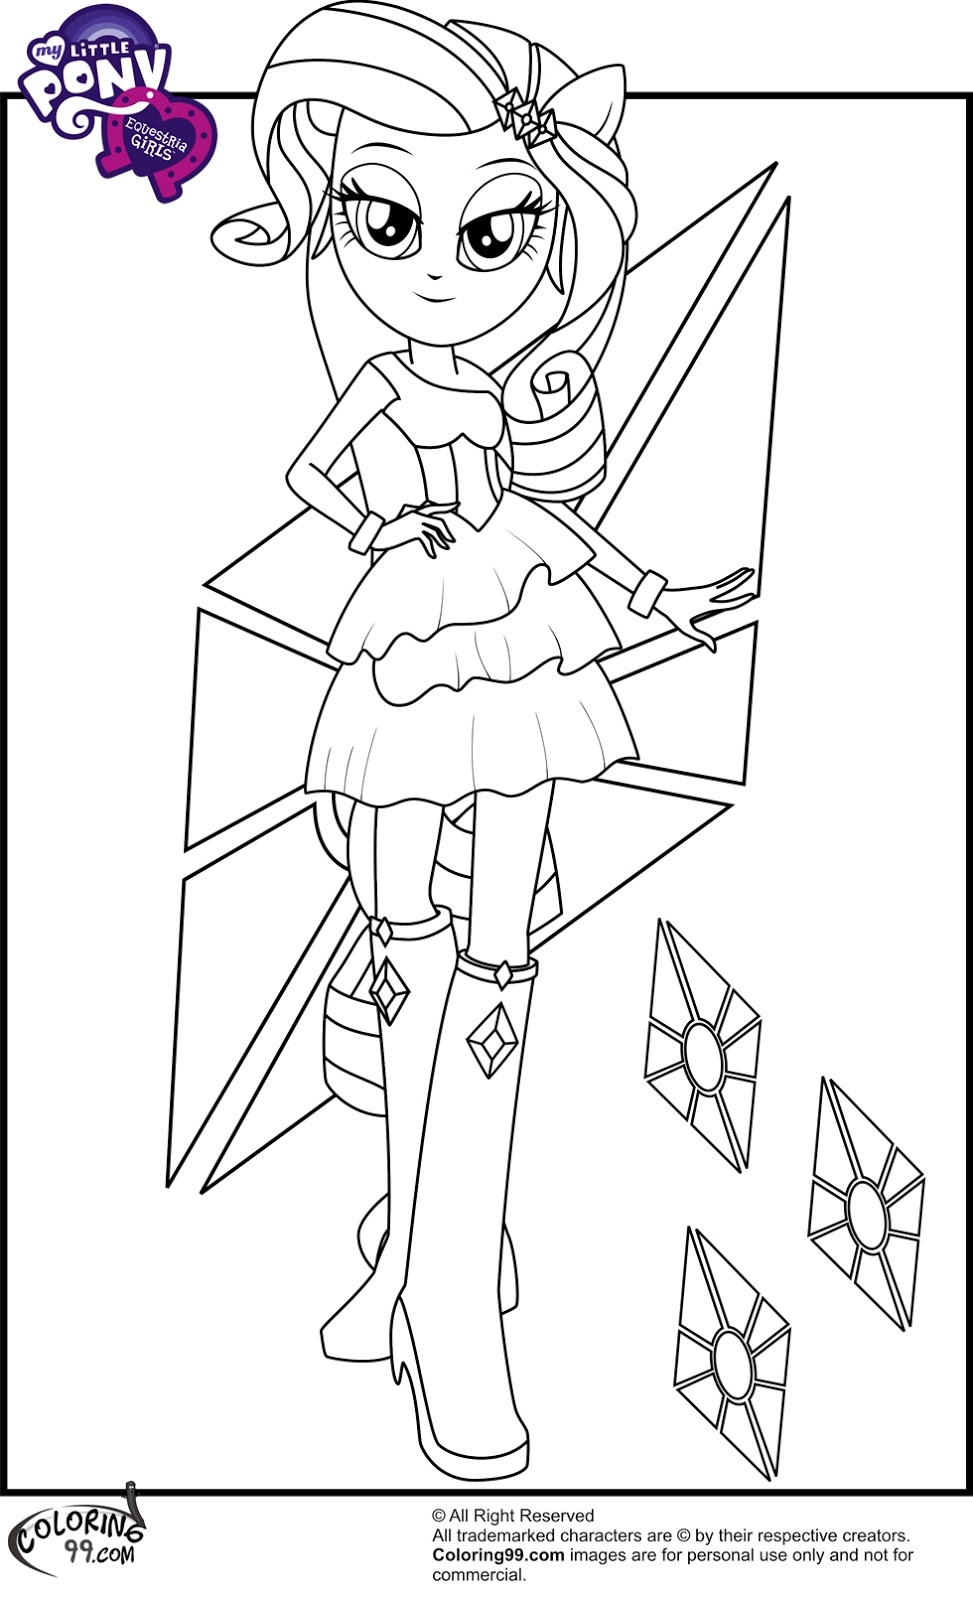 equestria girls coloring pages - my little pony equestria girls coloring